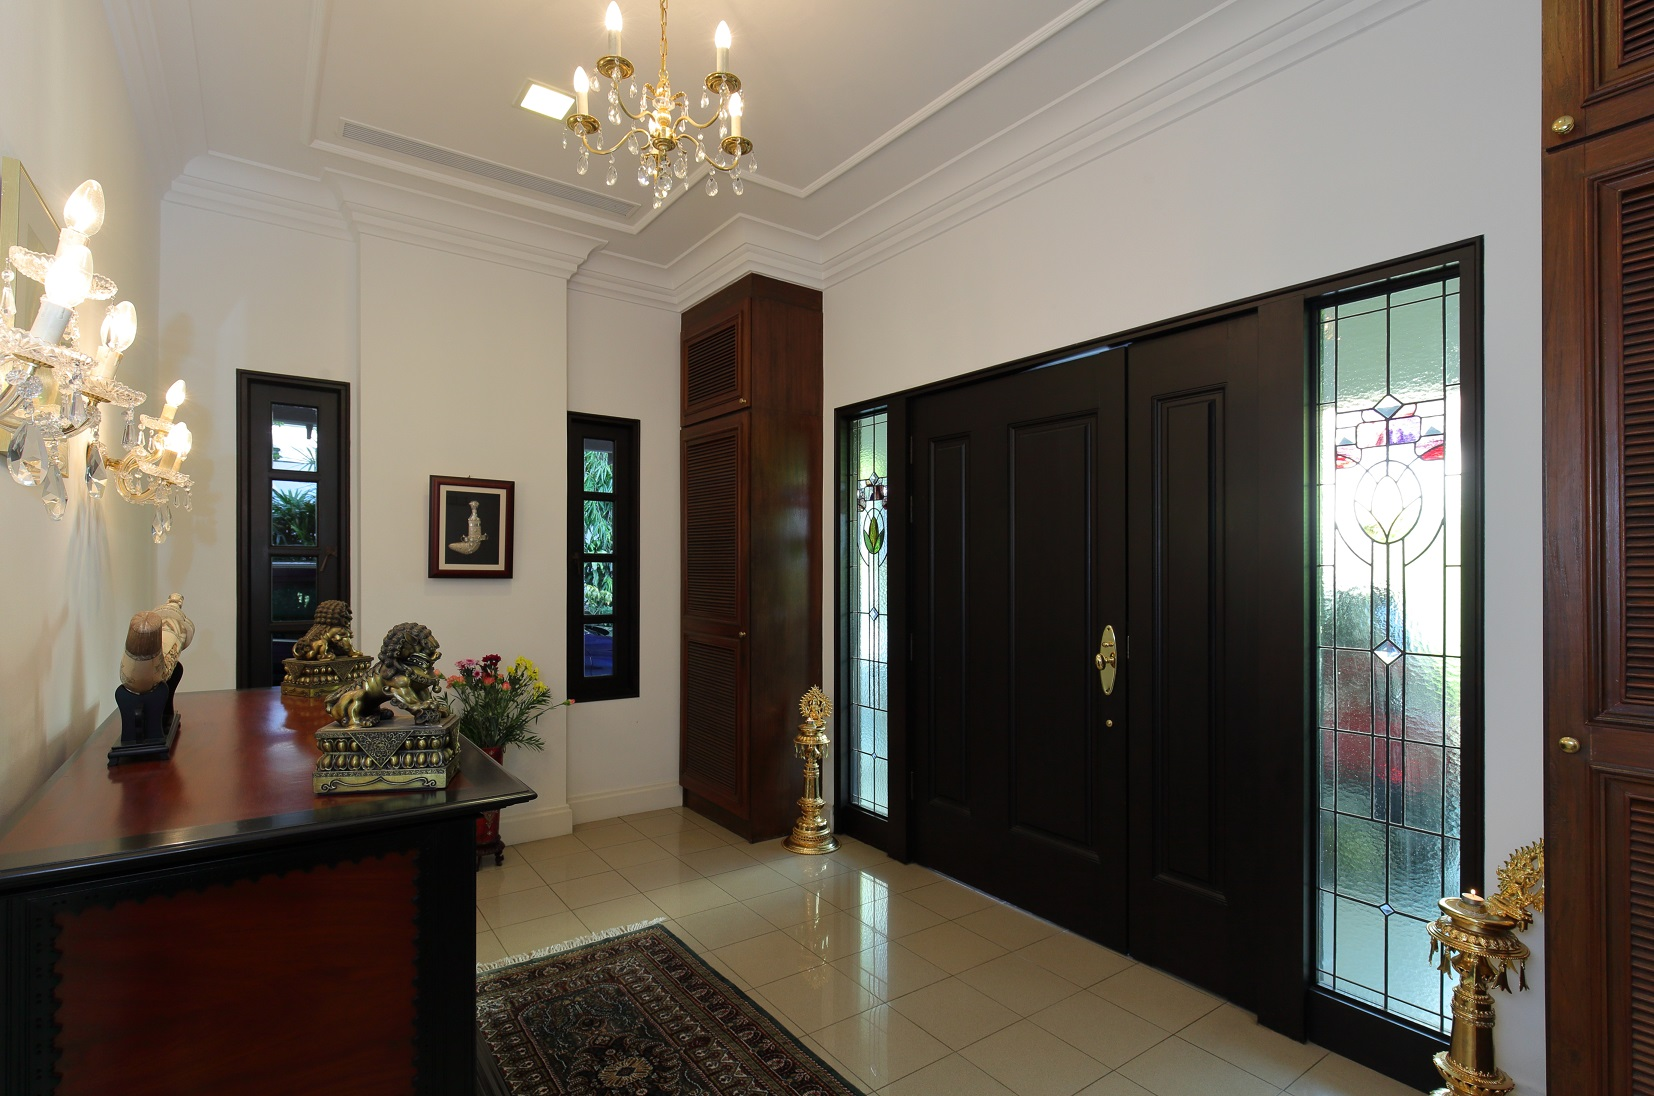 The entrance hall of the house (Photo: Samuel Isaac Chua/EdgeProp Singapore)